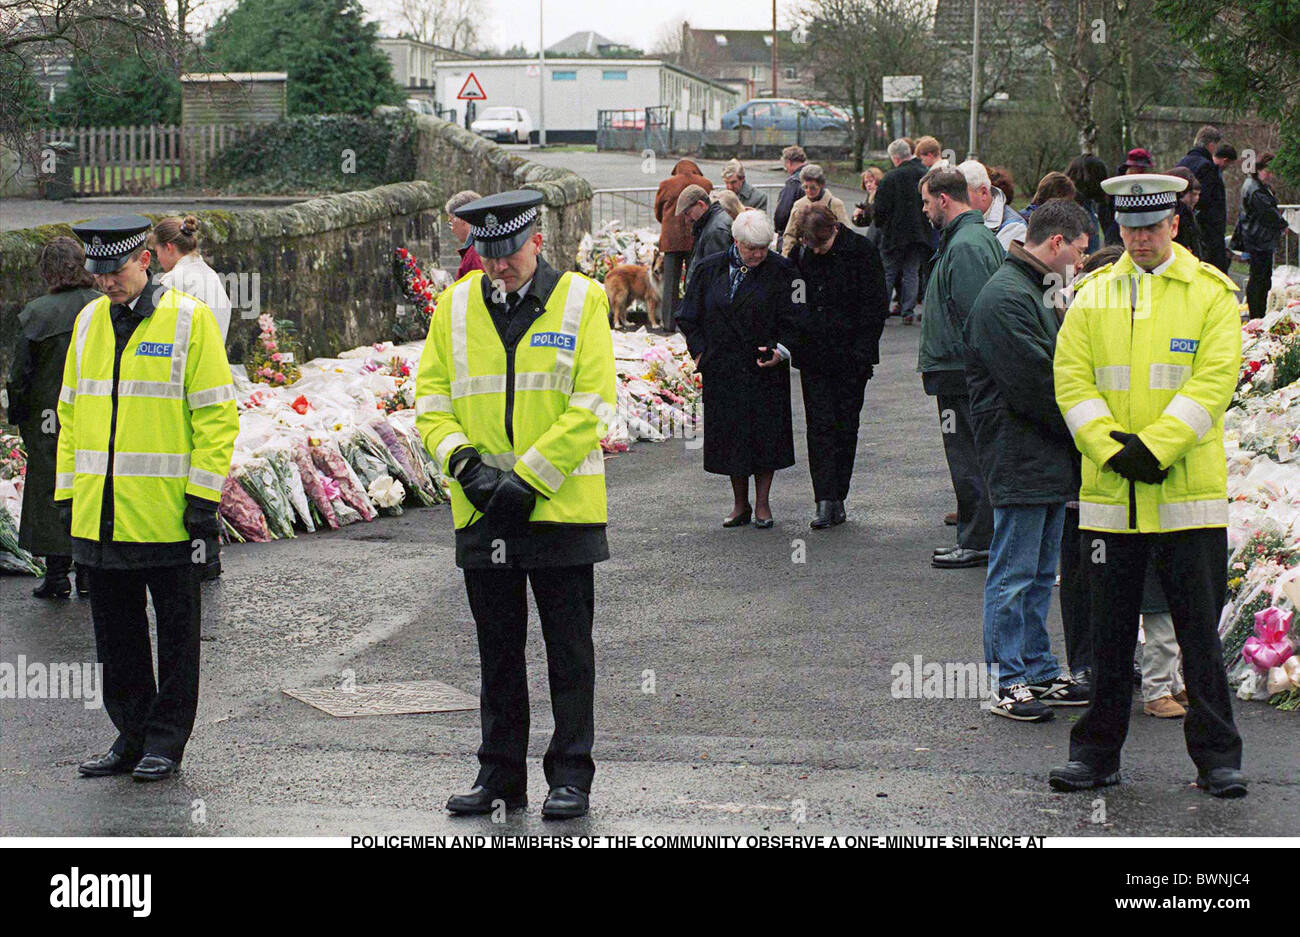 POLICEMEN AND MEMBERS OF THE COMMUNITY OBSERVE A ONE-MINUTE SILENCE AT DUNBLANE SCHOOL IN SCOTLAND AFTER SHOOTING - Stock Image